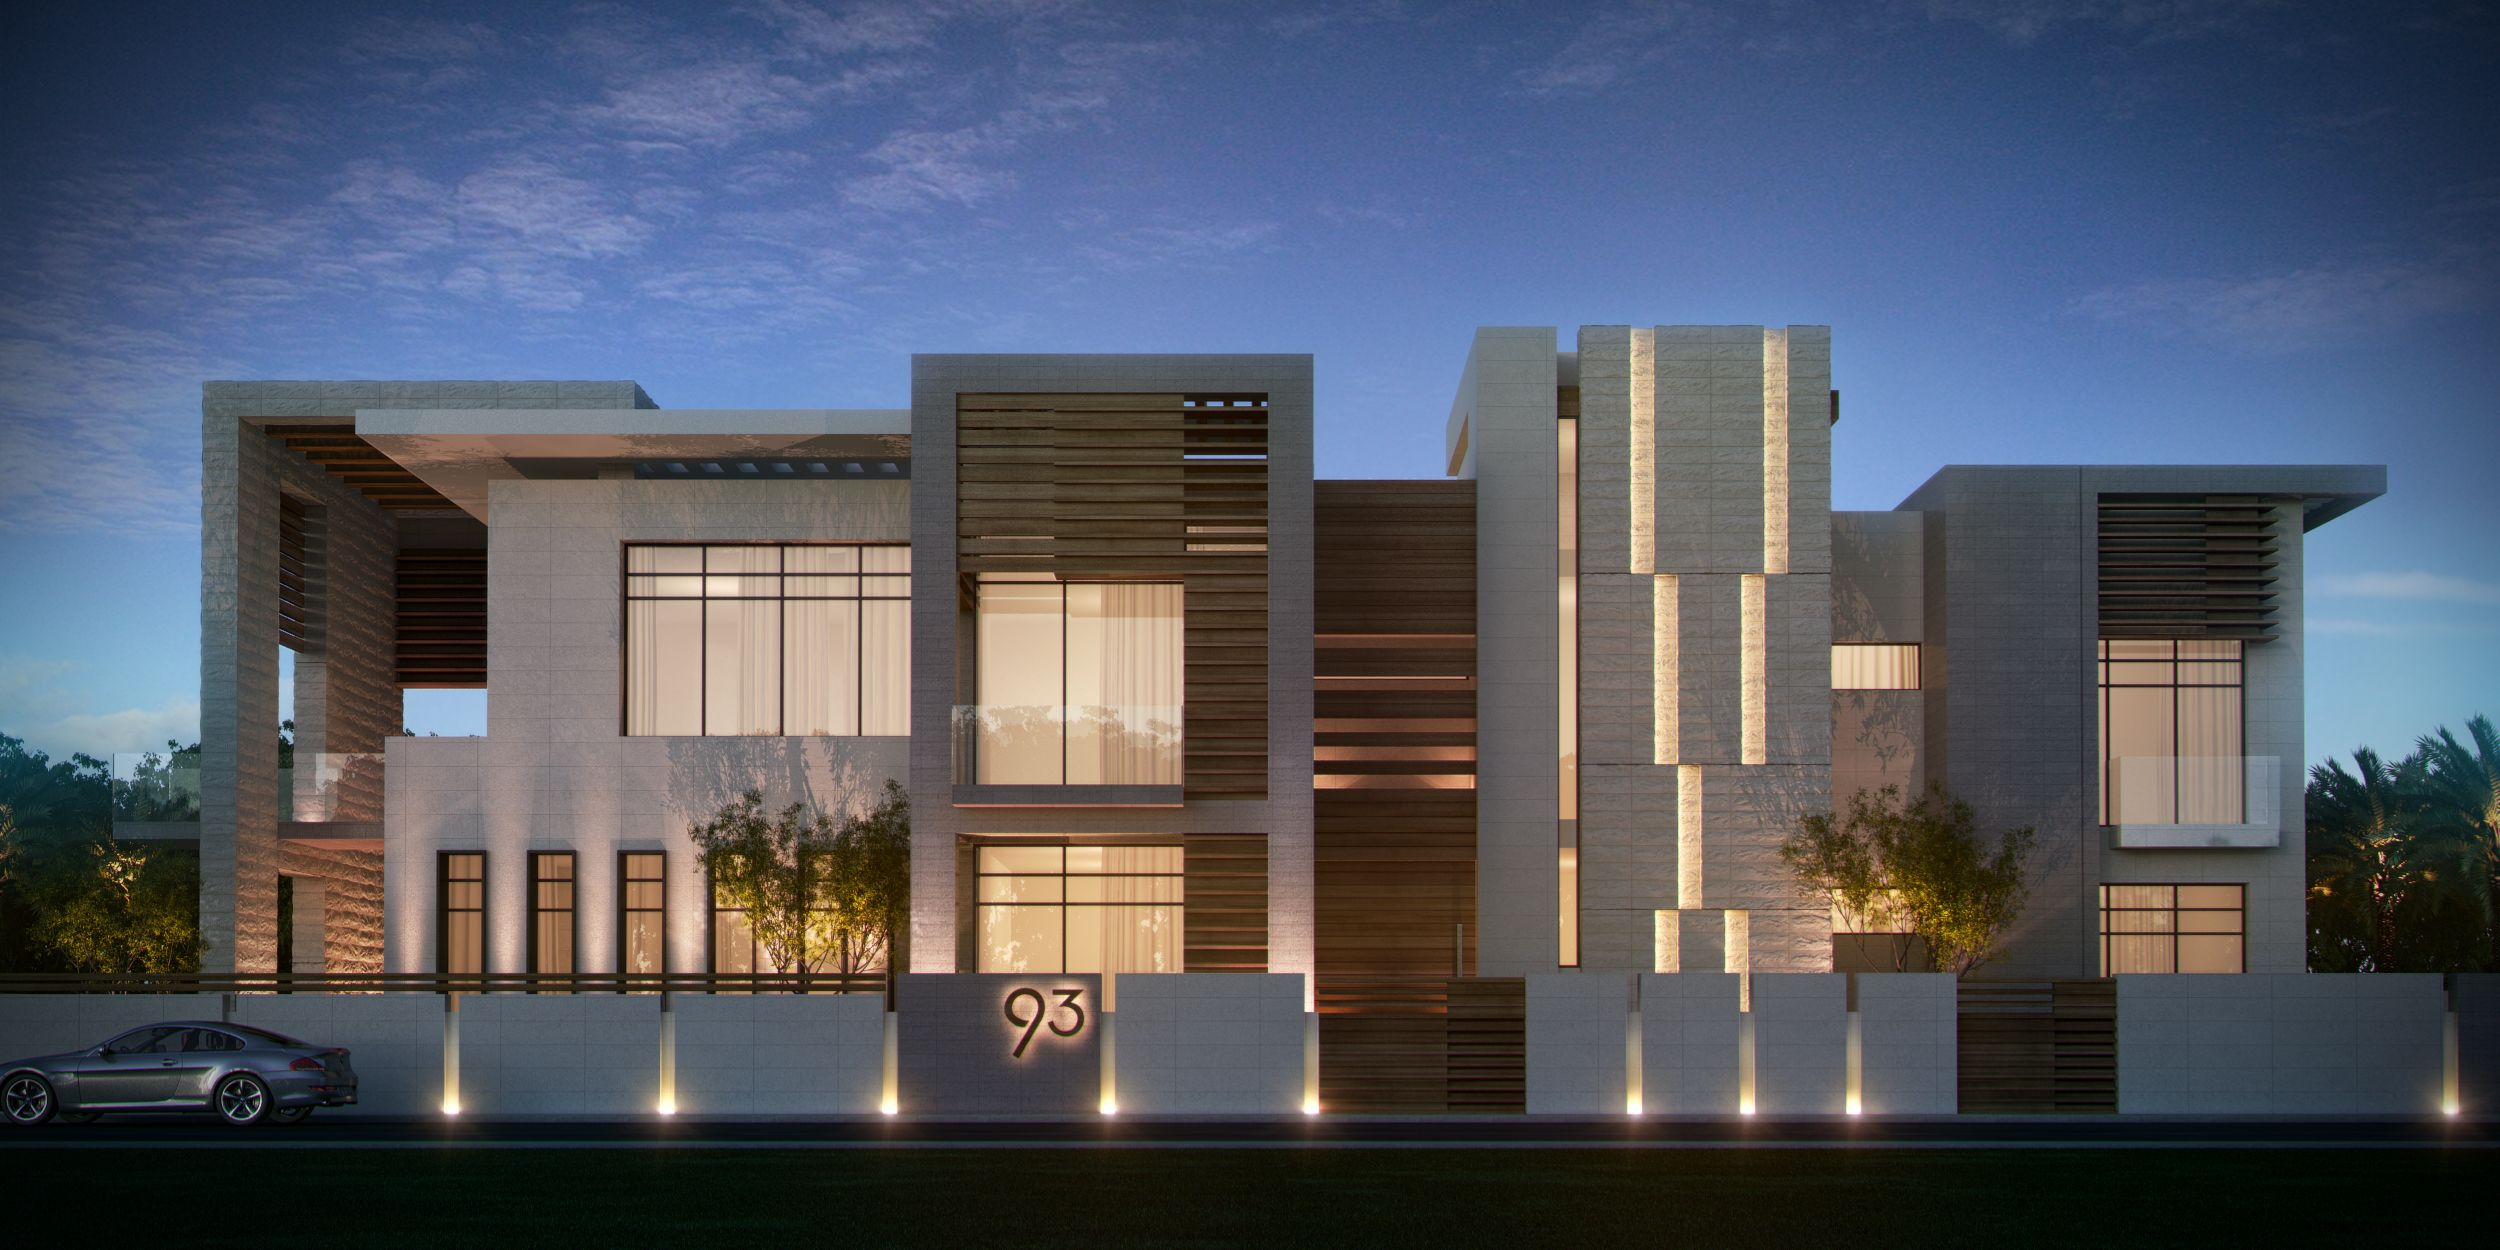 Private Villa Uae Sarah Sadeq Architects Sarah Sadeq